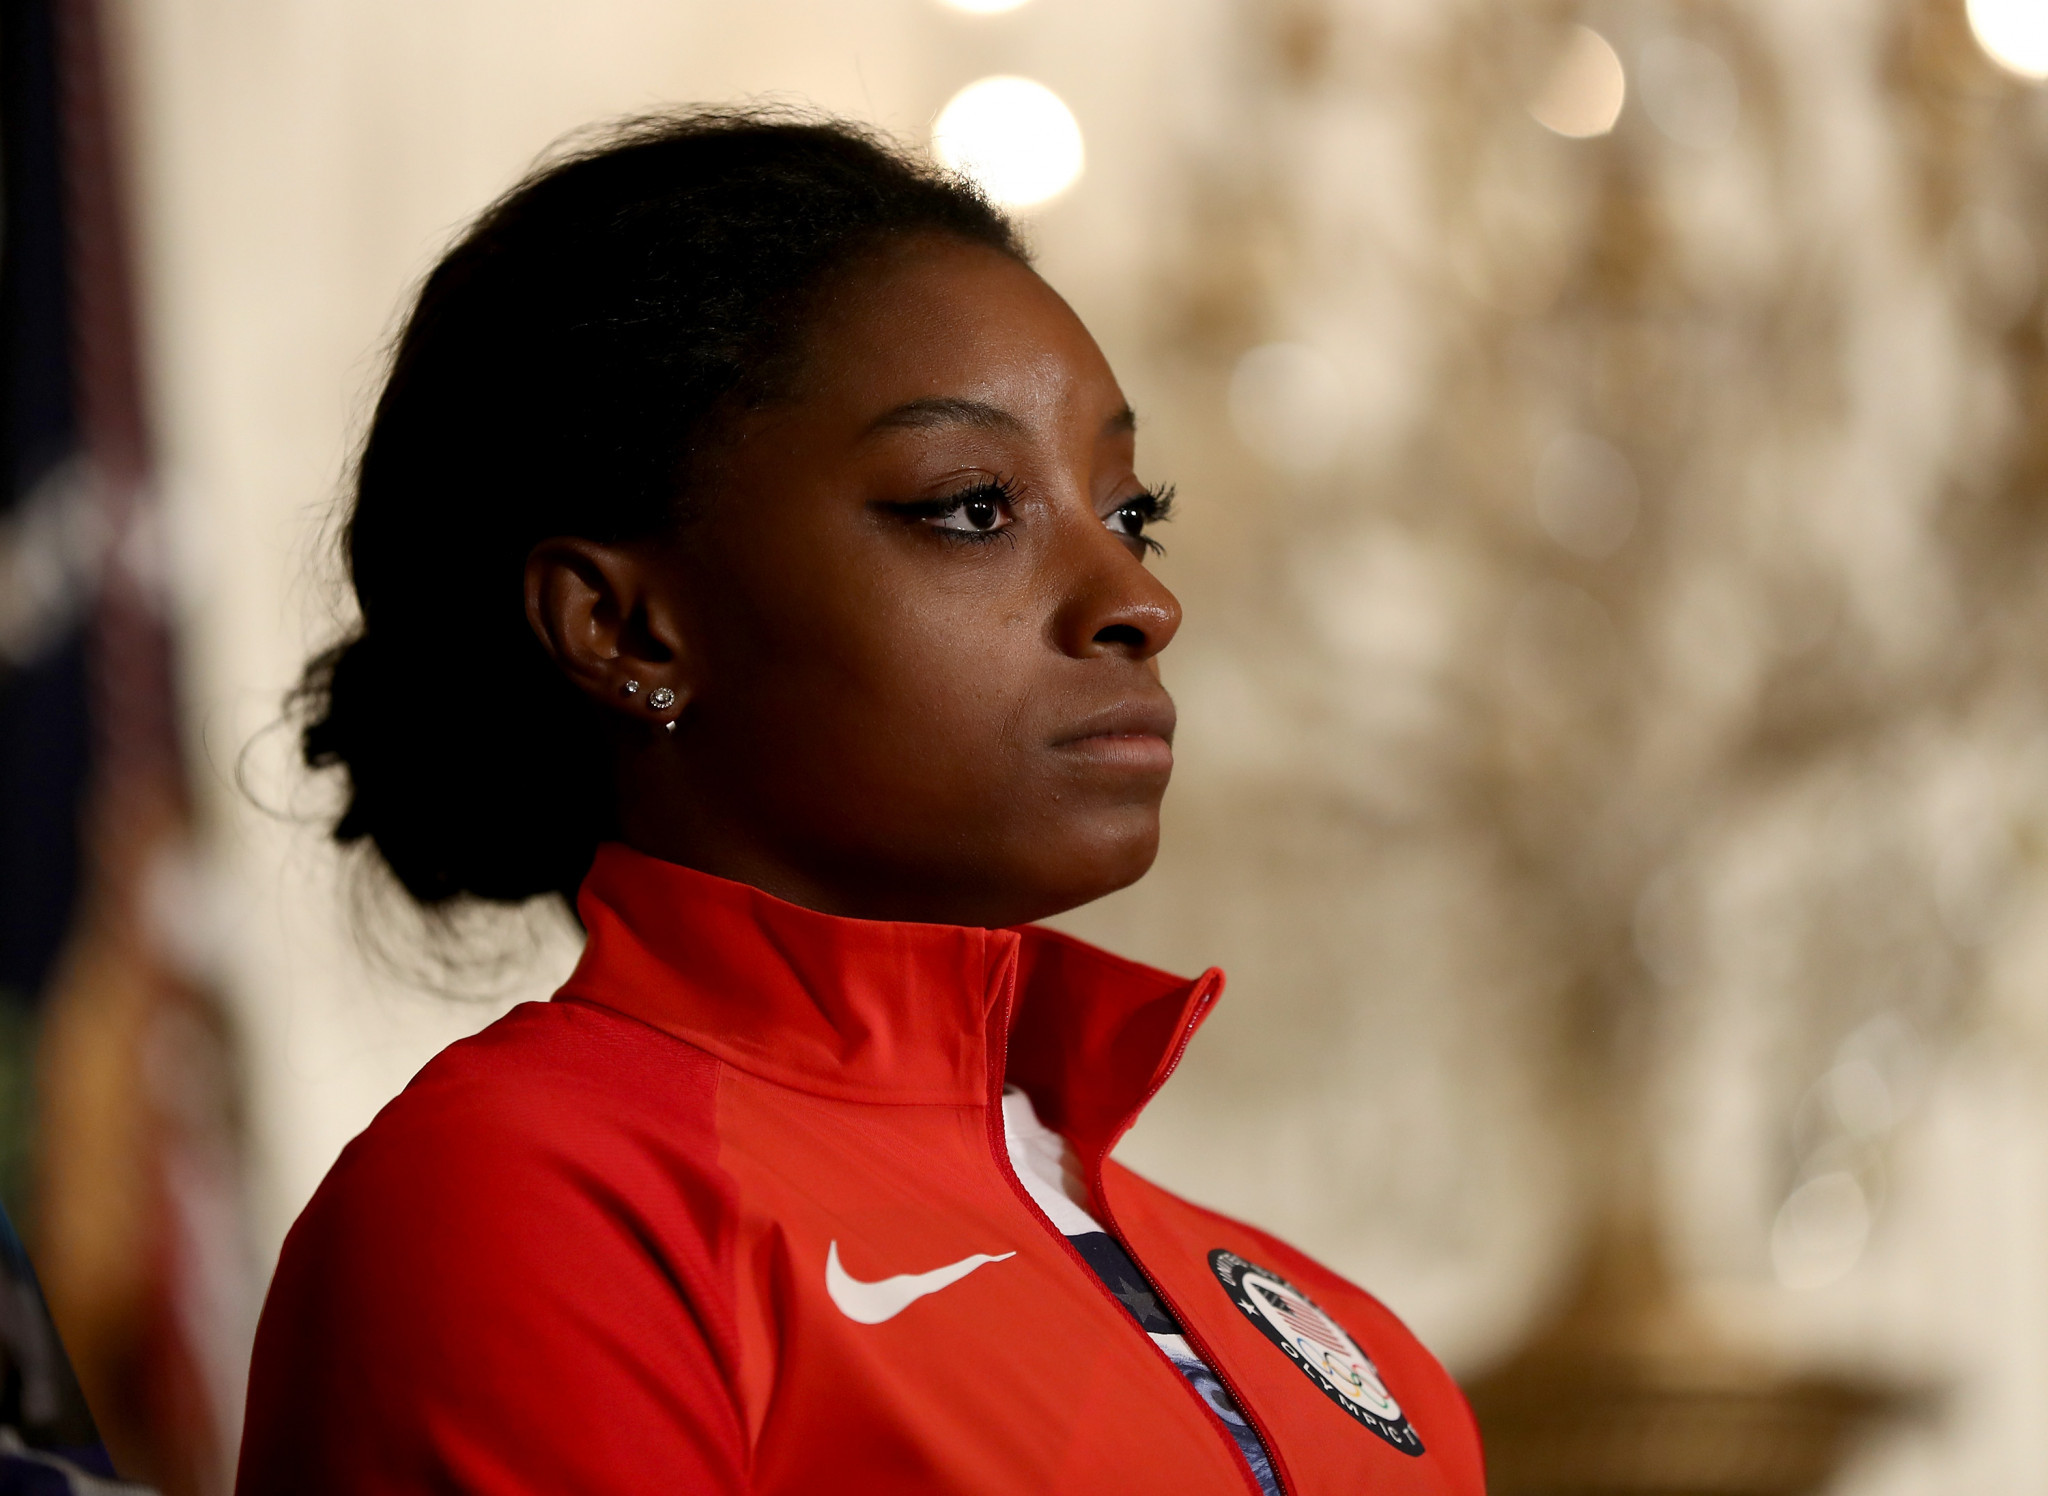 Four-time Olympic champion Biles says she was victim of sexual abuse by Nassar